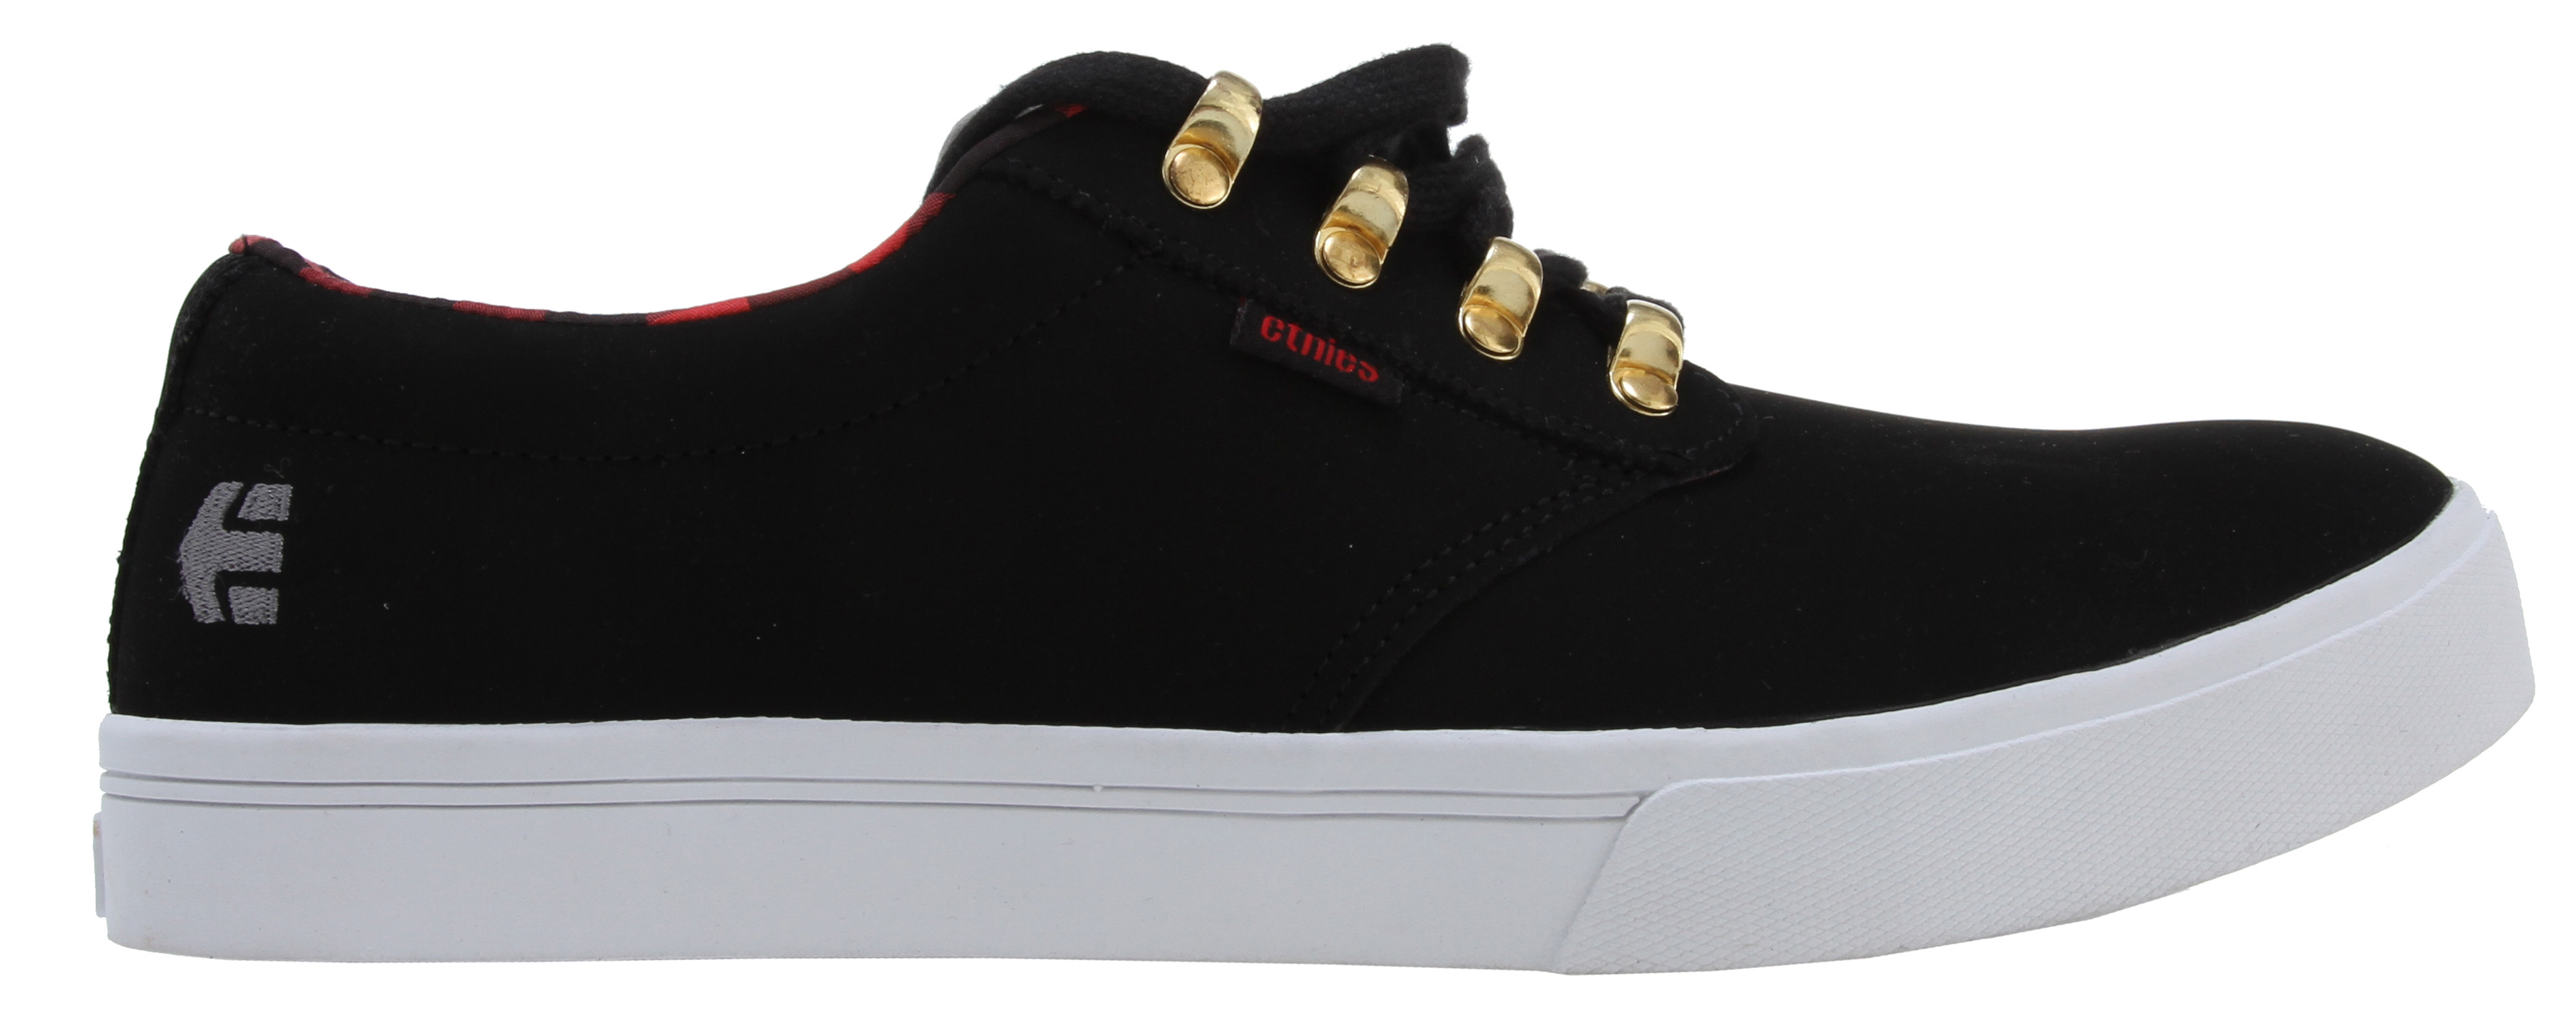 Skateboard Etnies Jameson 2 LX Skate Shoes - $38.95